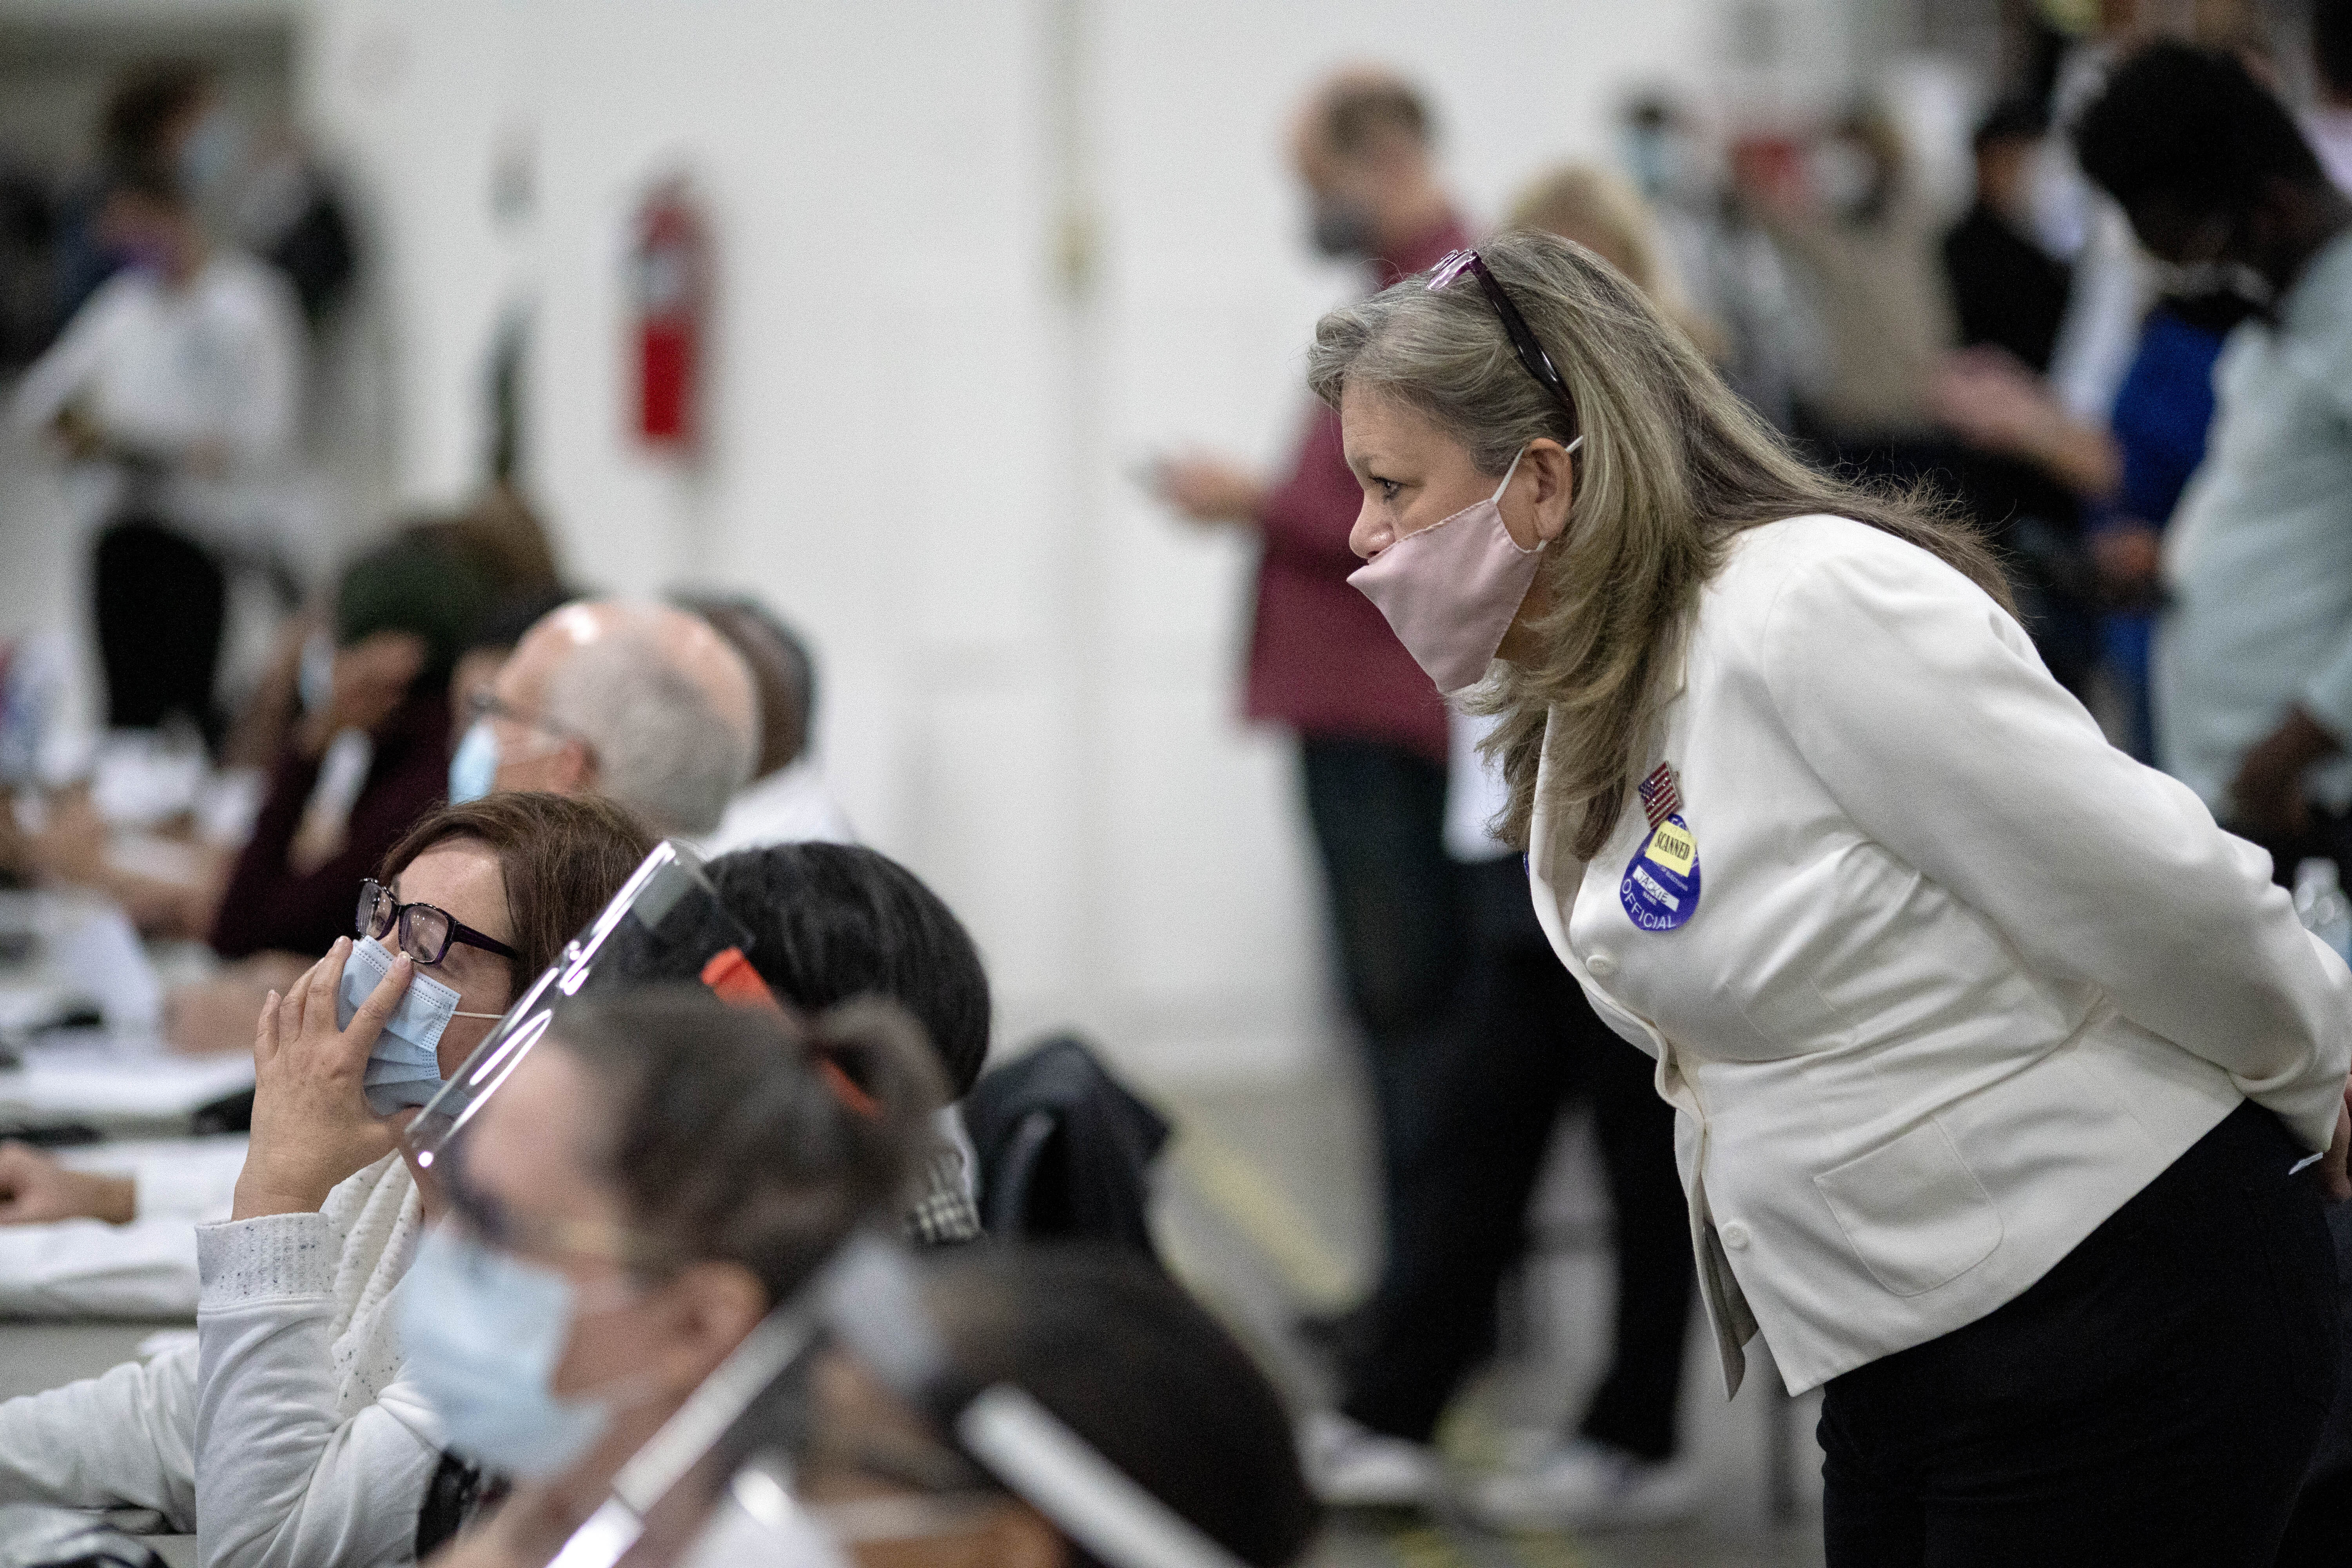 A Republican election challenger at right watches over election inspectors as they examine a ballot as votes are counted into the early morning hours Wednesday, Nov. 4, 2020 at the central counting board in Detroit. (David Goldman/AP)